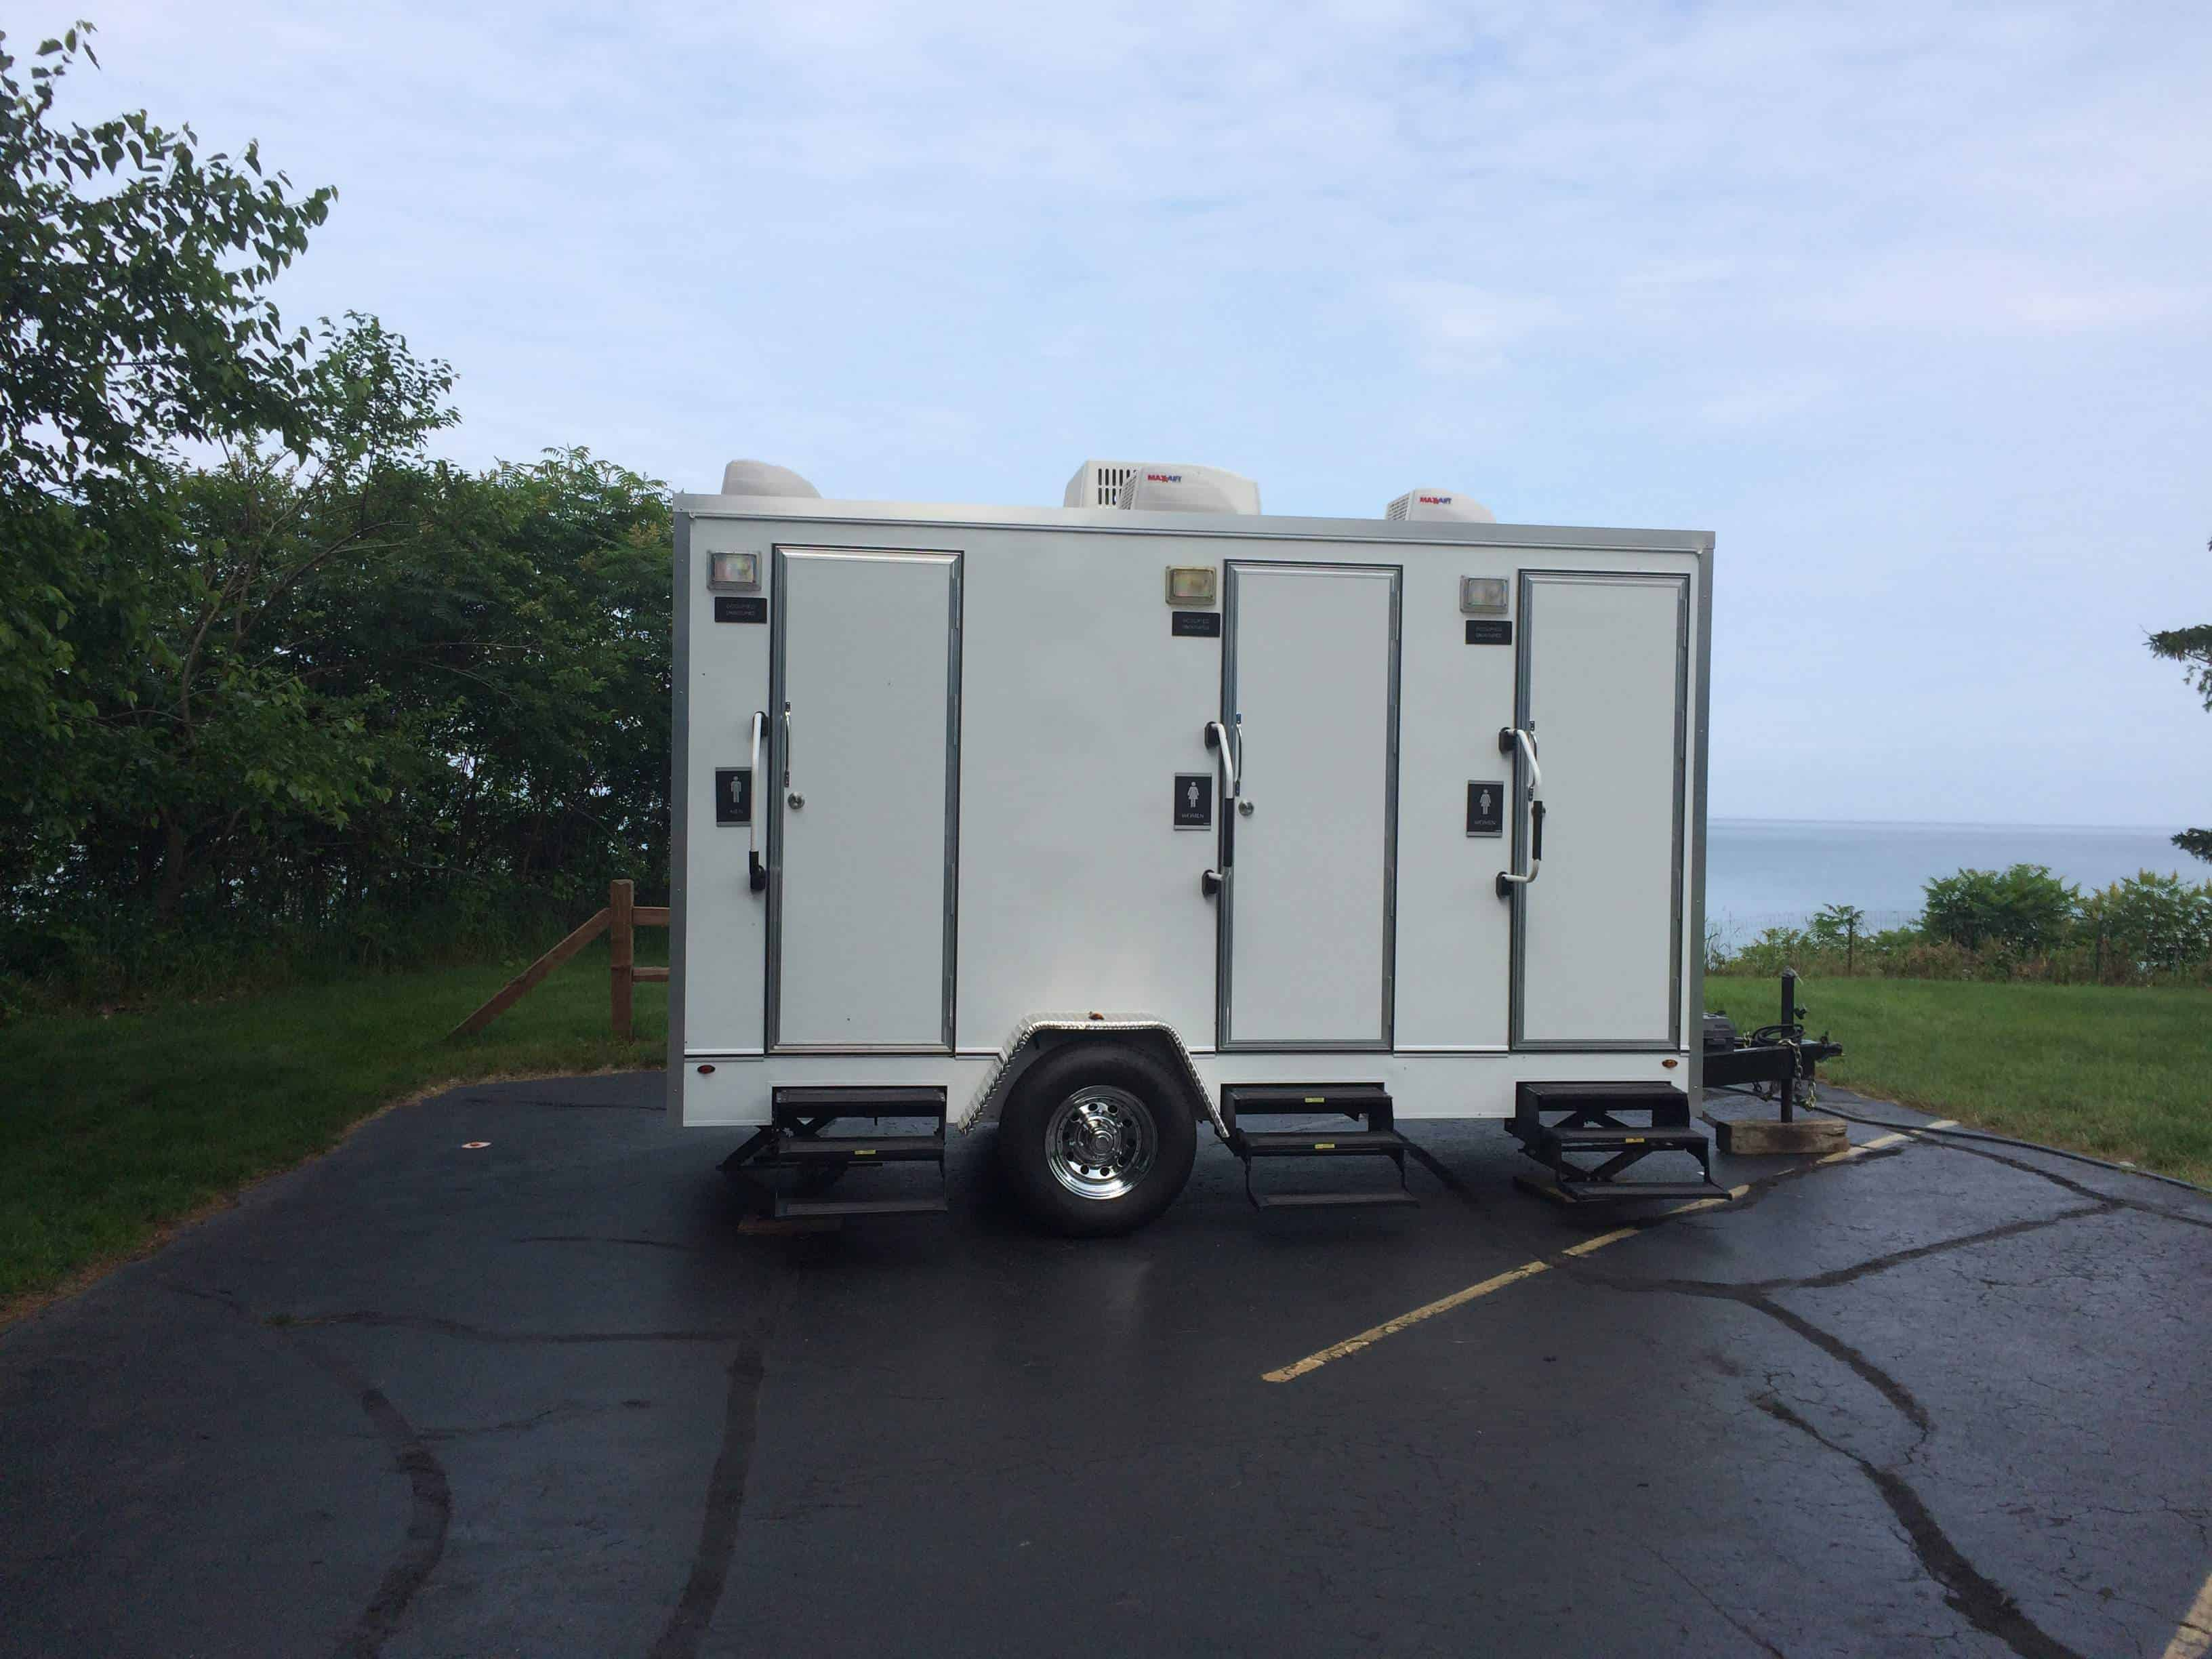 must the from you festival any portable addition luxury have an hosting if restroom wedding bathroom these event rental rentals partytime trailer outdoor trailers to perfect a are blog they